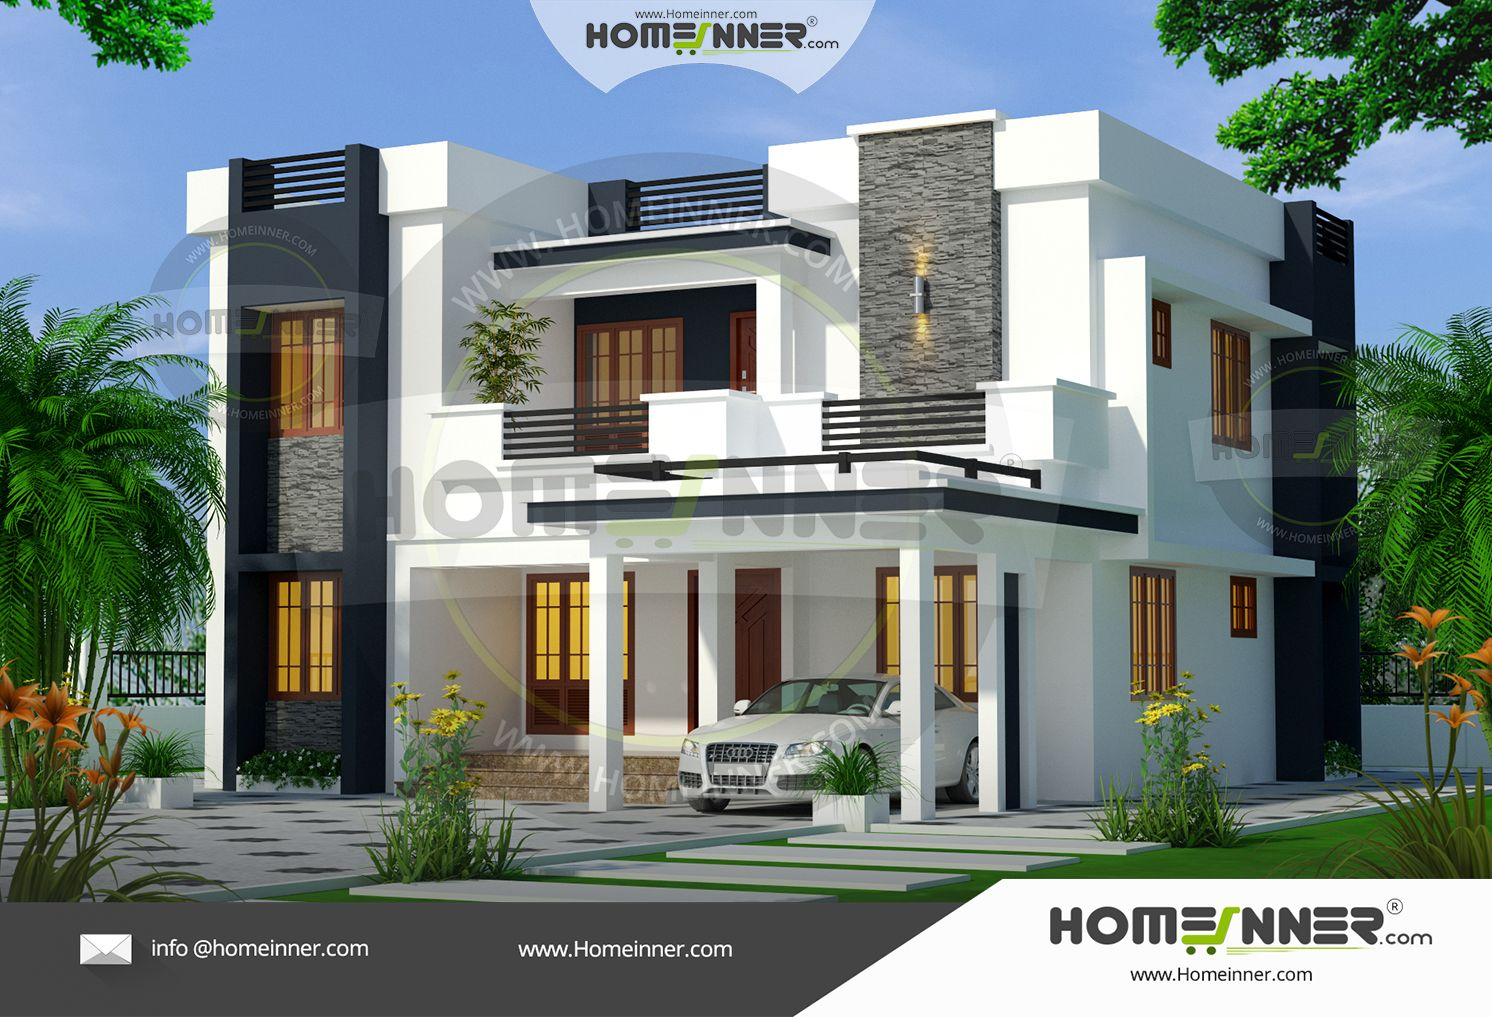 4 Bedroom Contemporary ultra modern house plans 1900 sq ft ...